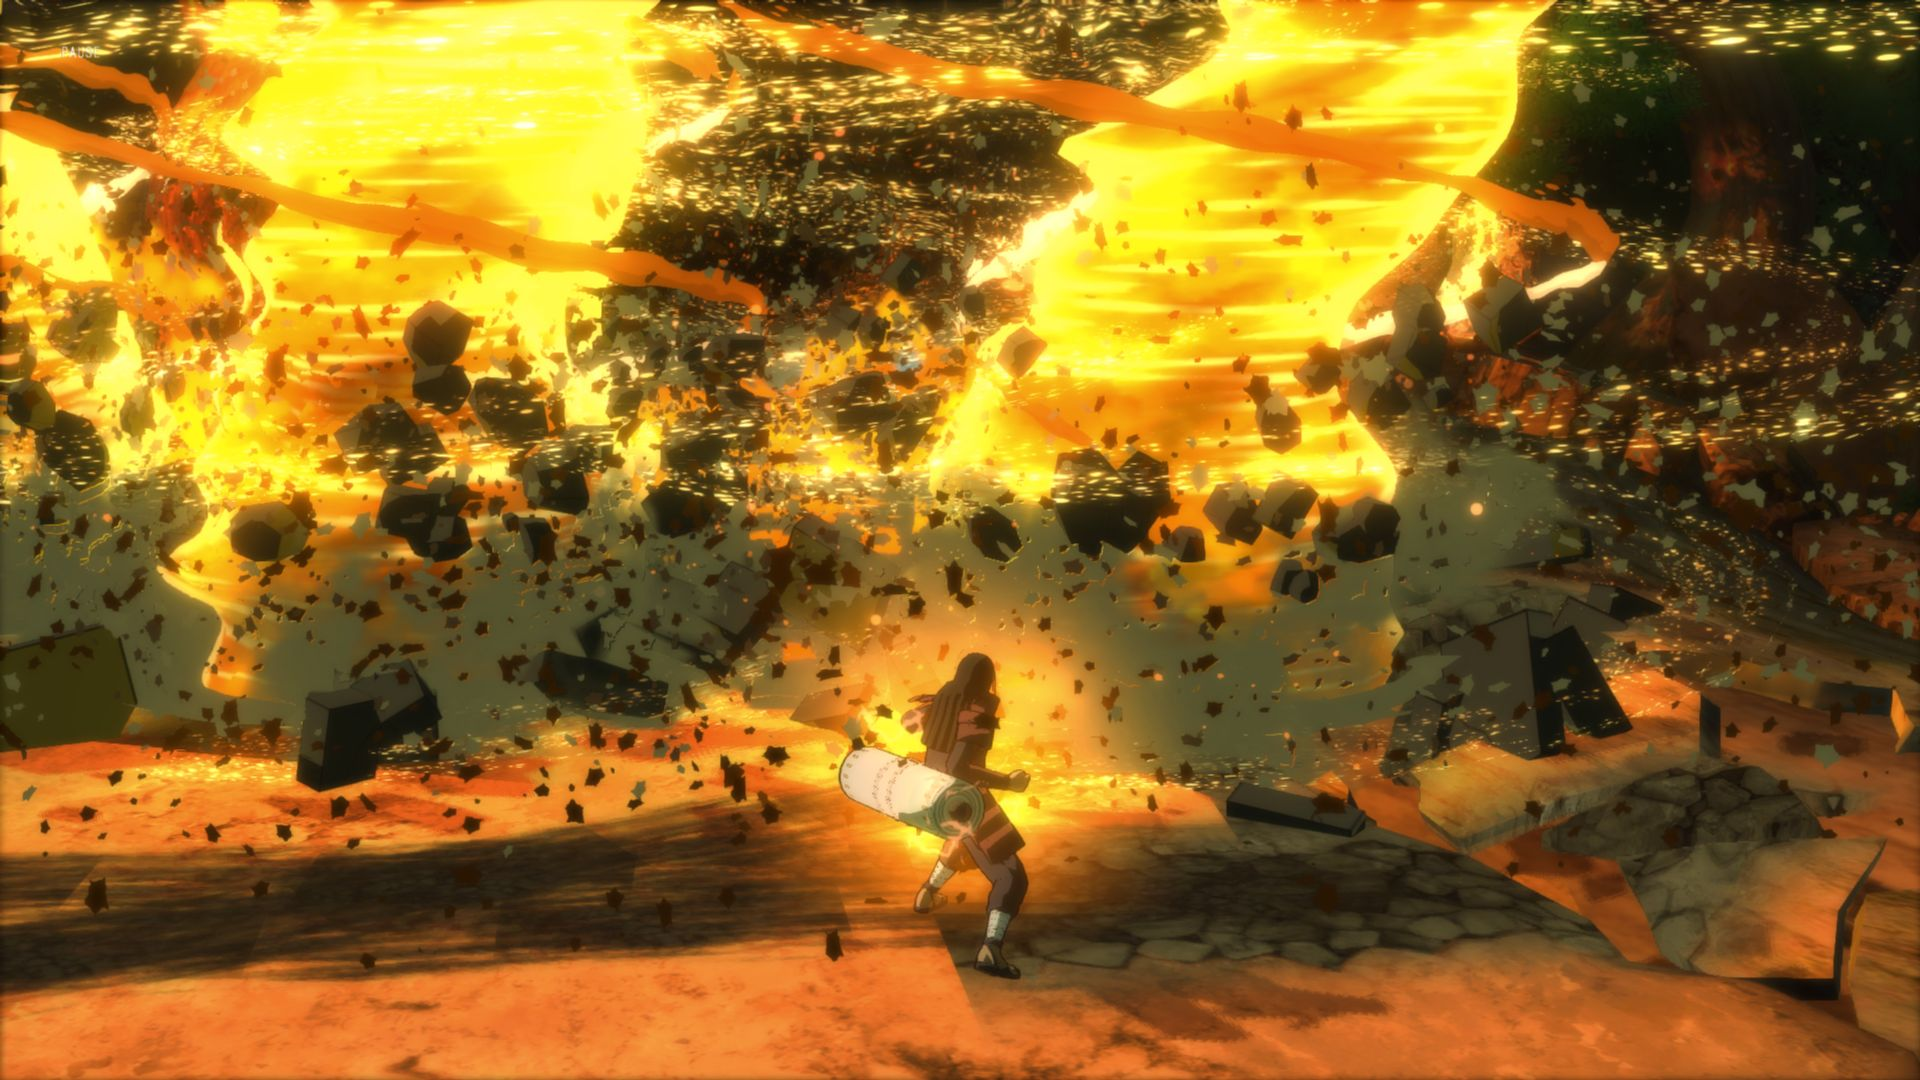 Naruto Shippuden: Ultimate Ninja Storm 4 Preview